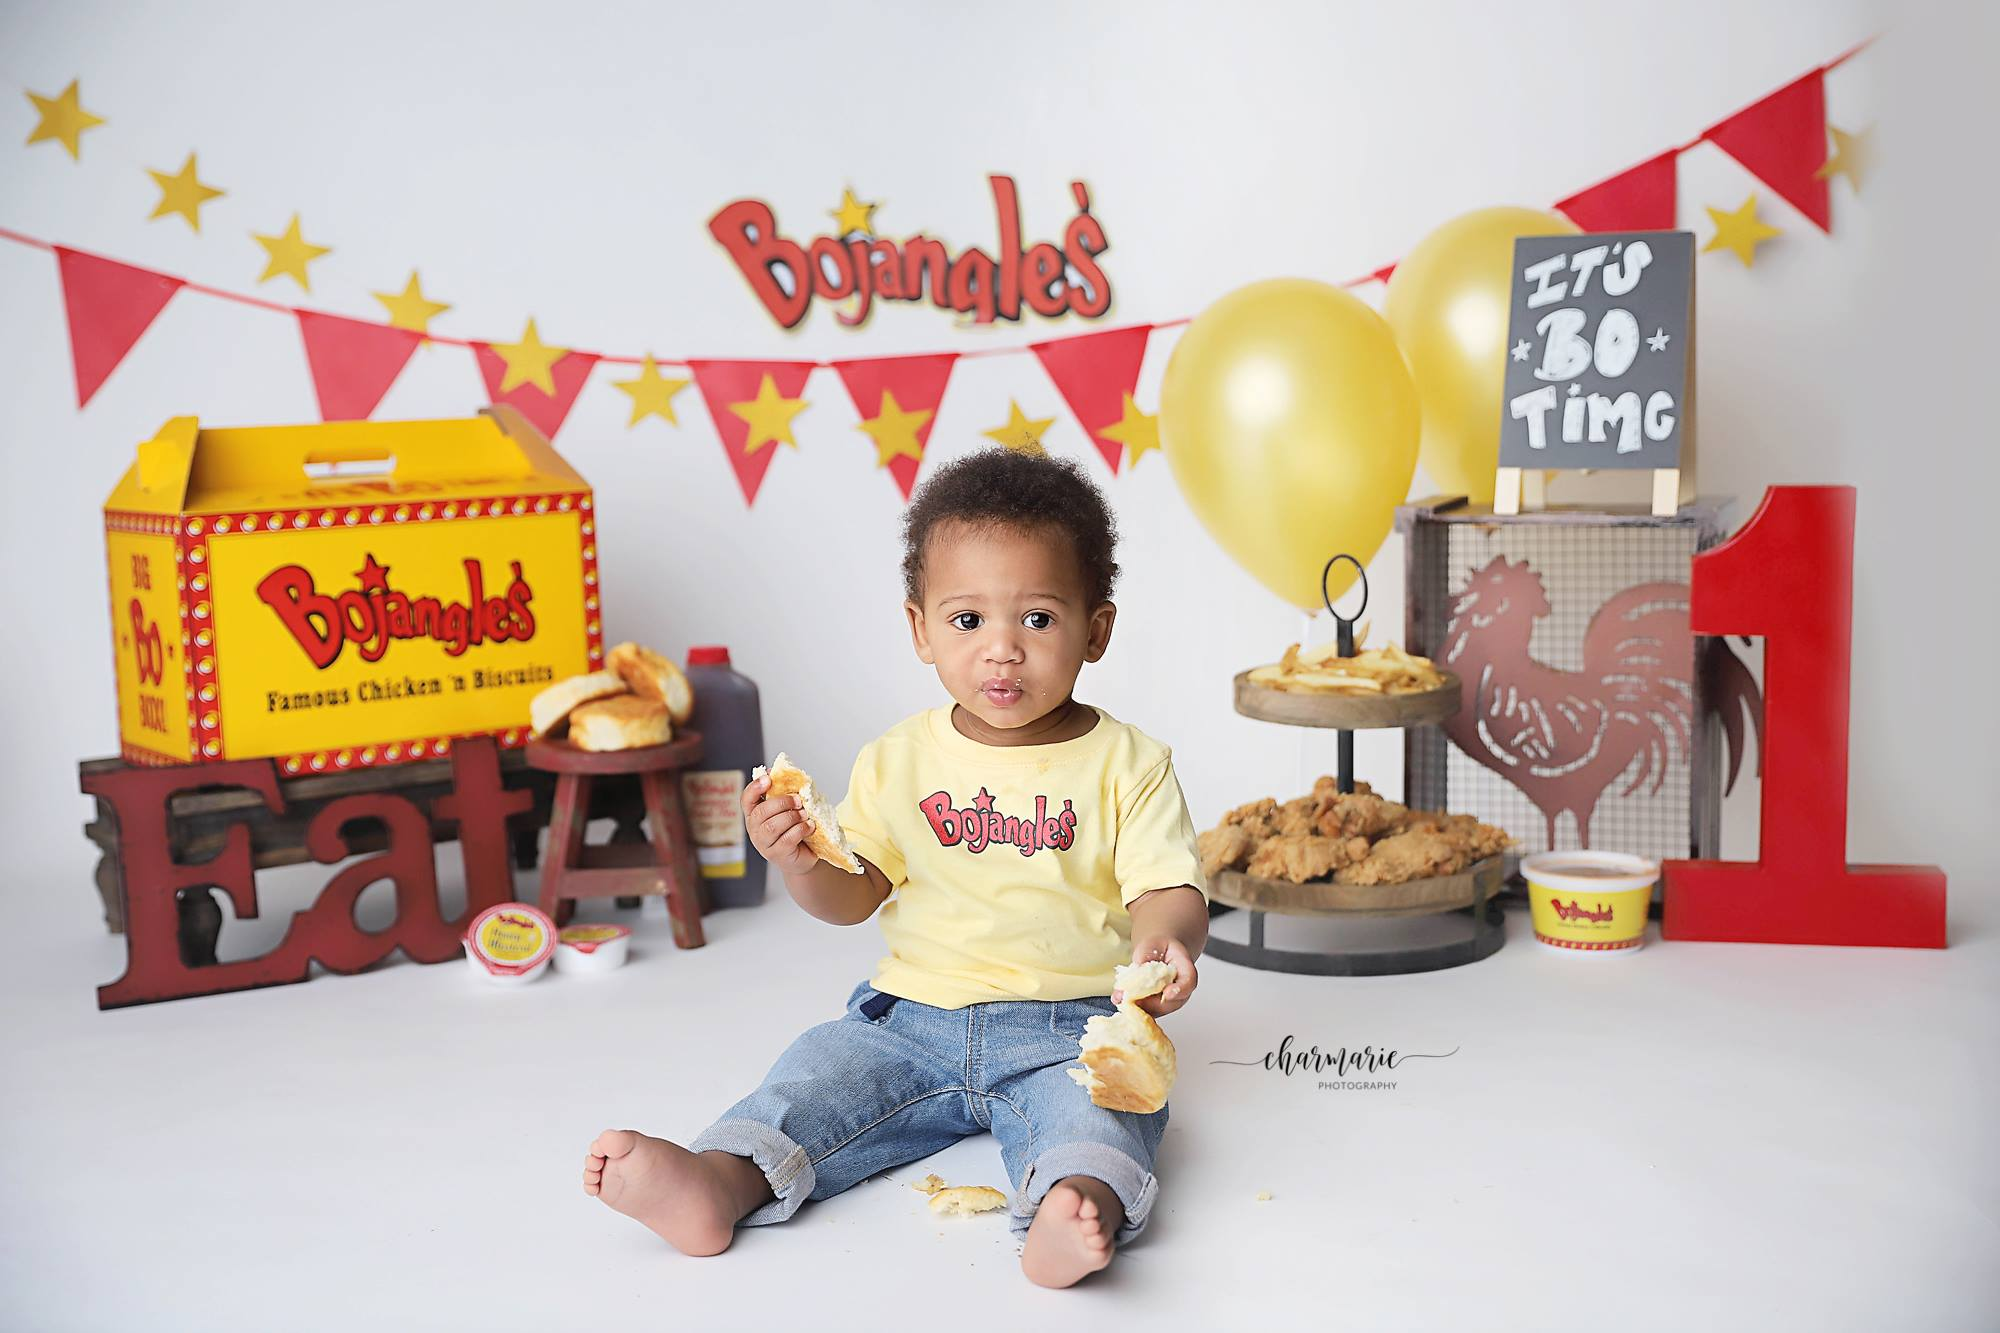 Wendell 1 Year Old Gets Bojangles Themed Photo Shoot